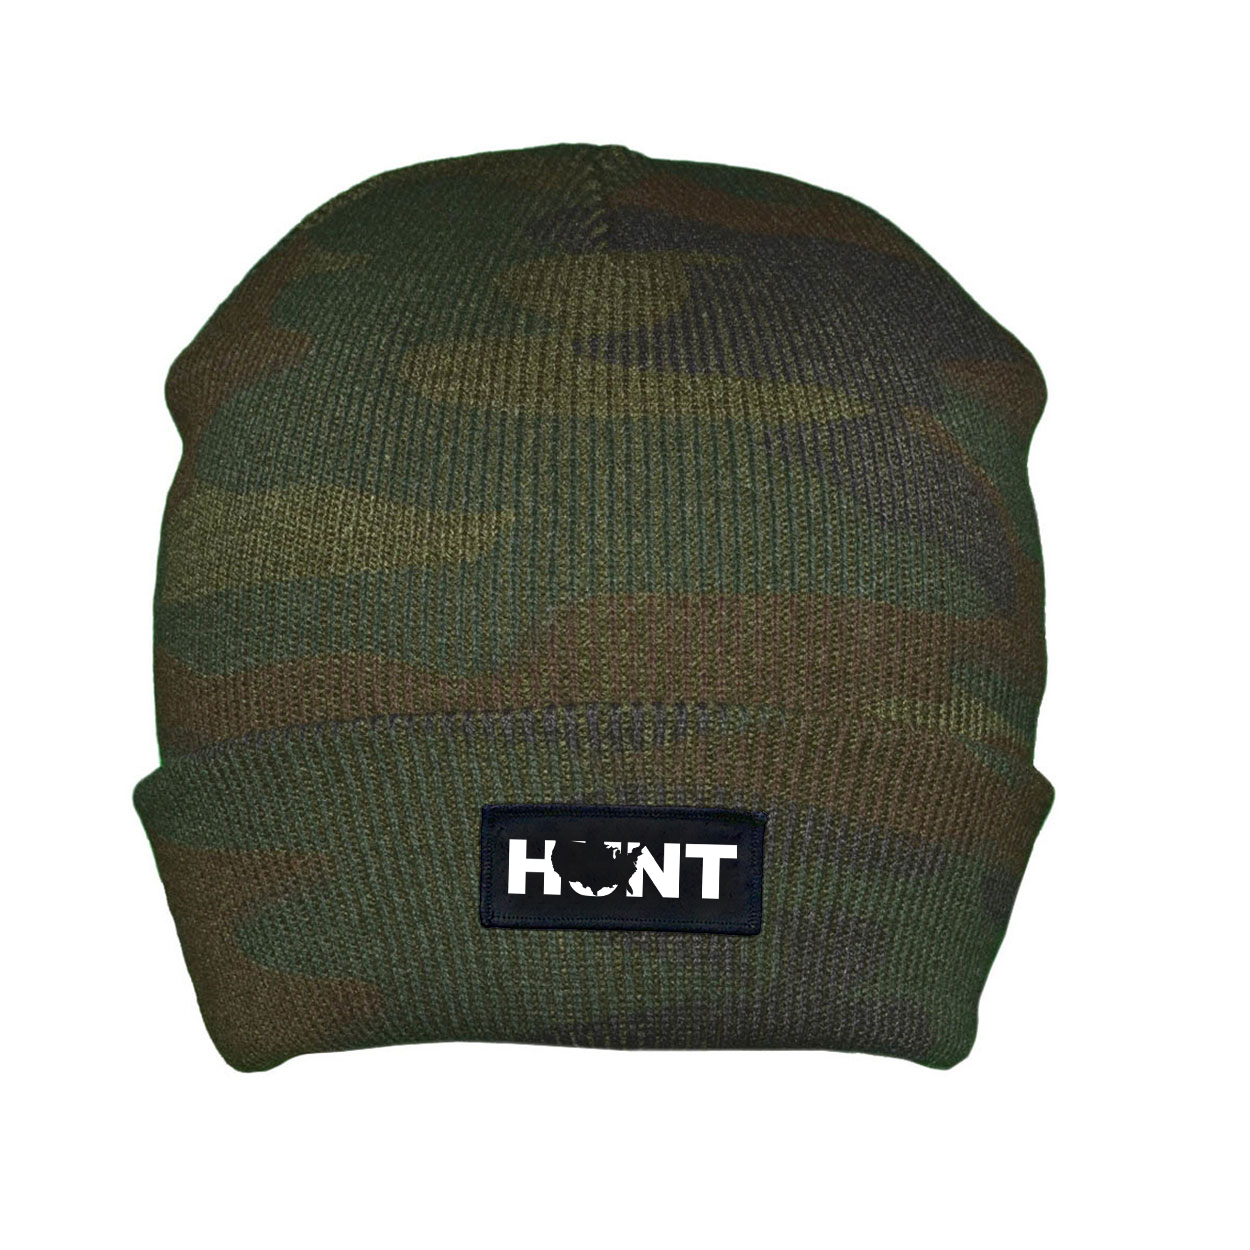 Hunt United States Night Out Woven Patch Roll Up Skully Beanie Camo (White Logo)